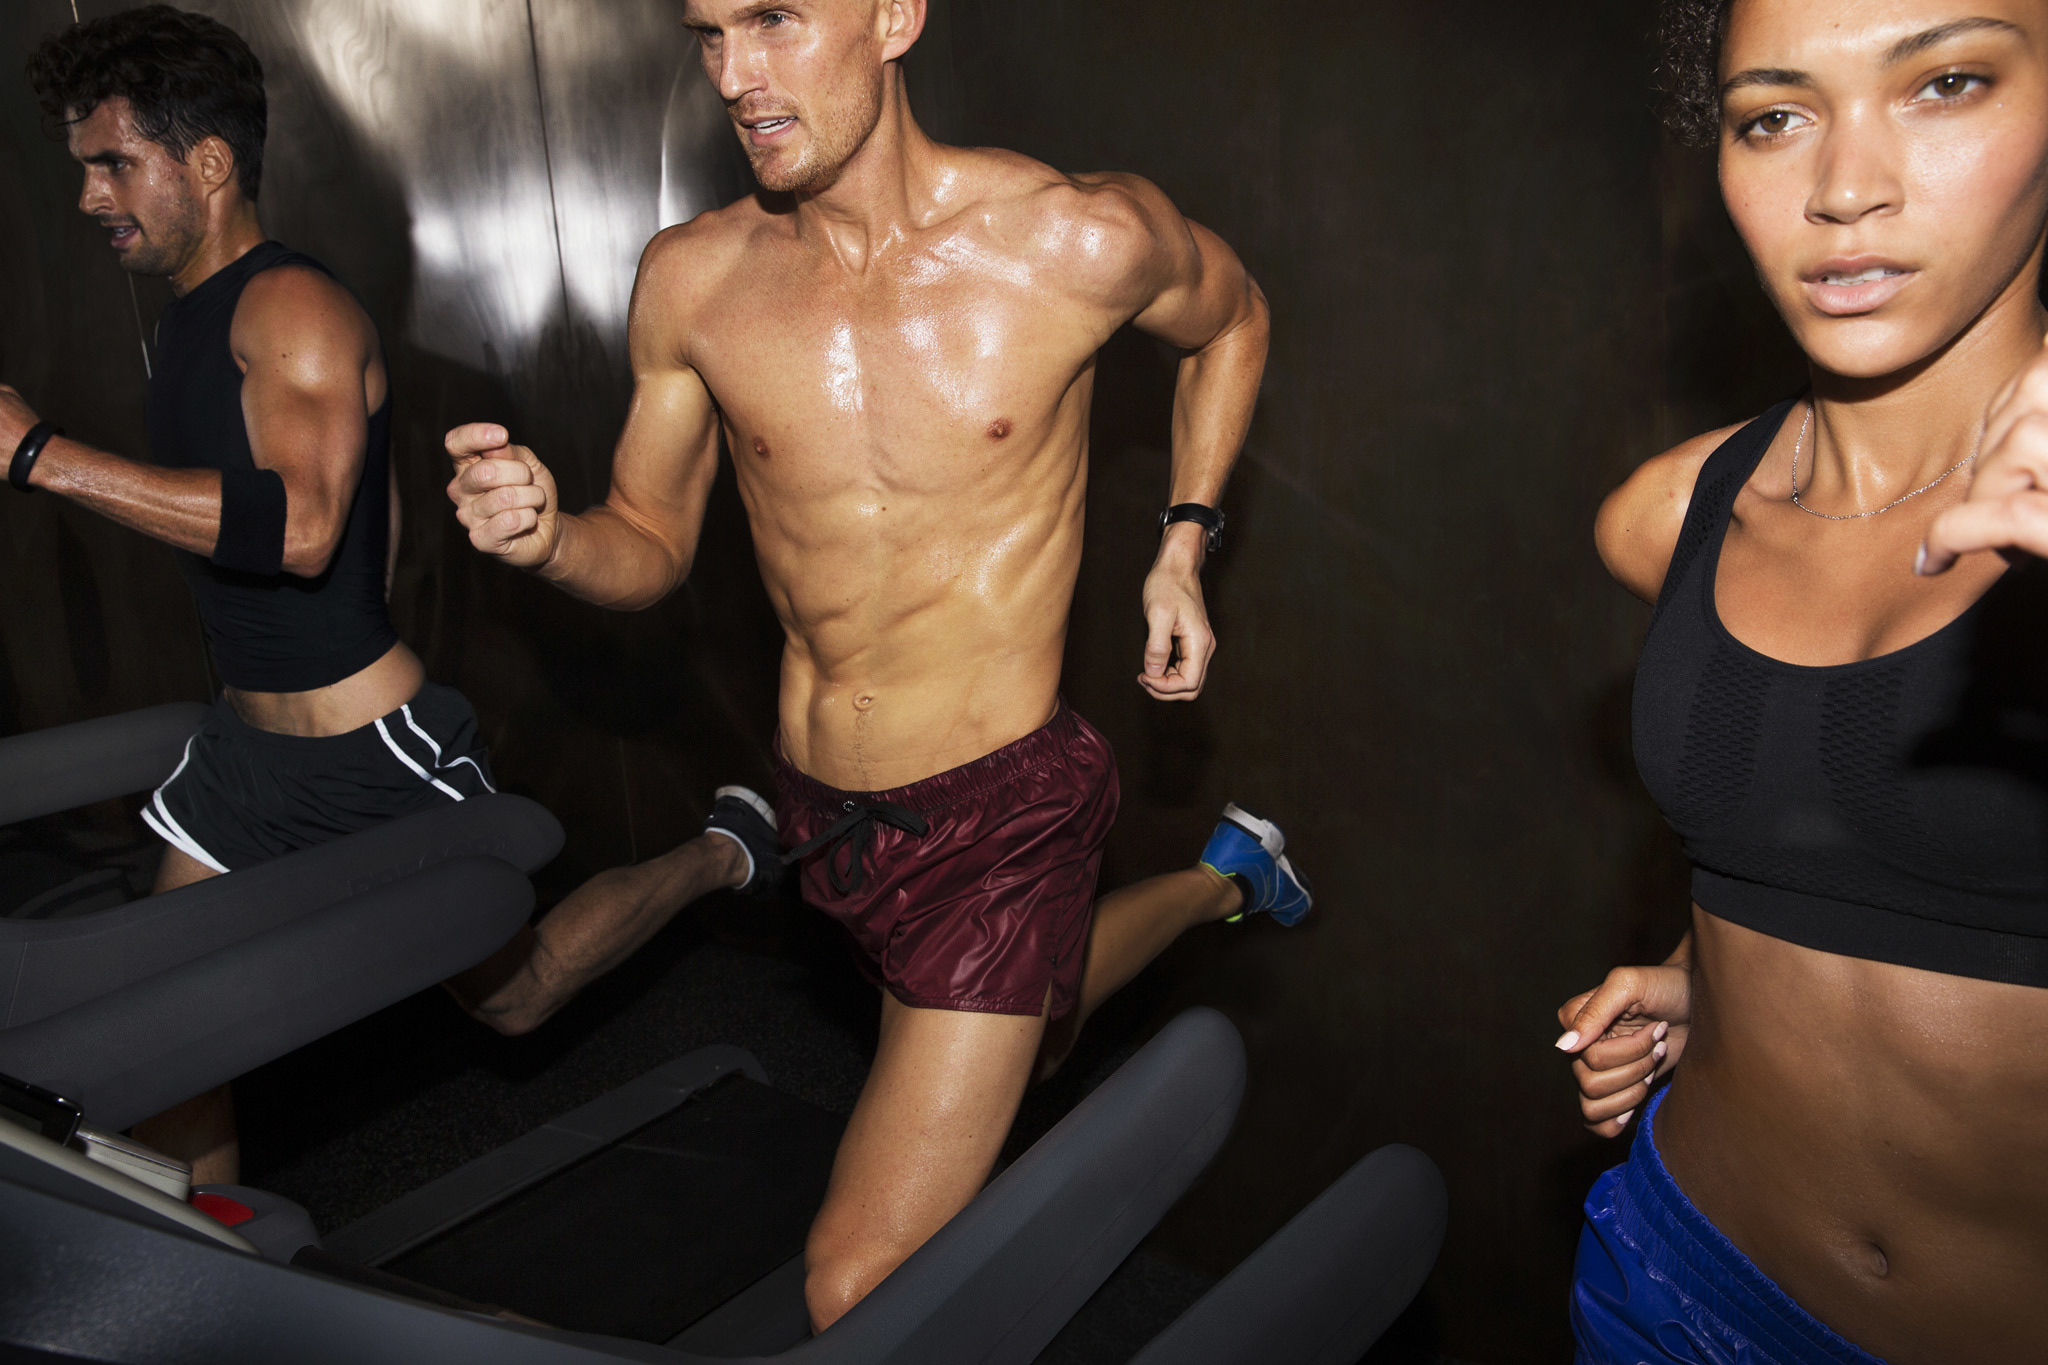 Treadmill interval running at Equinox